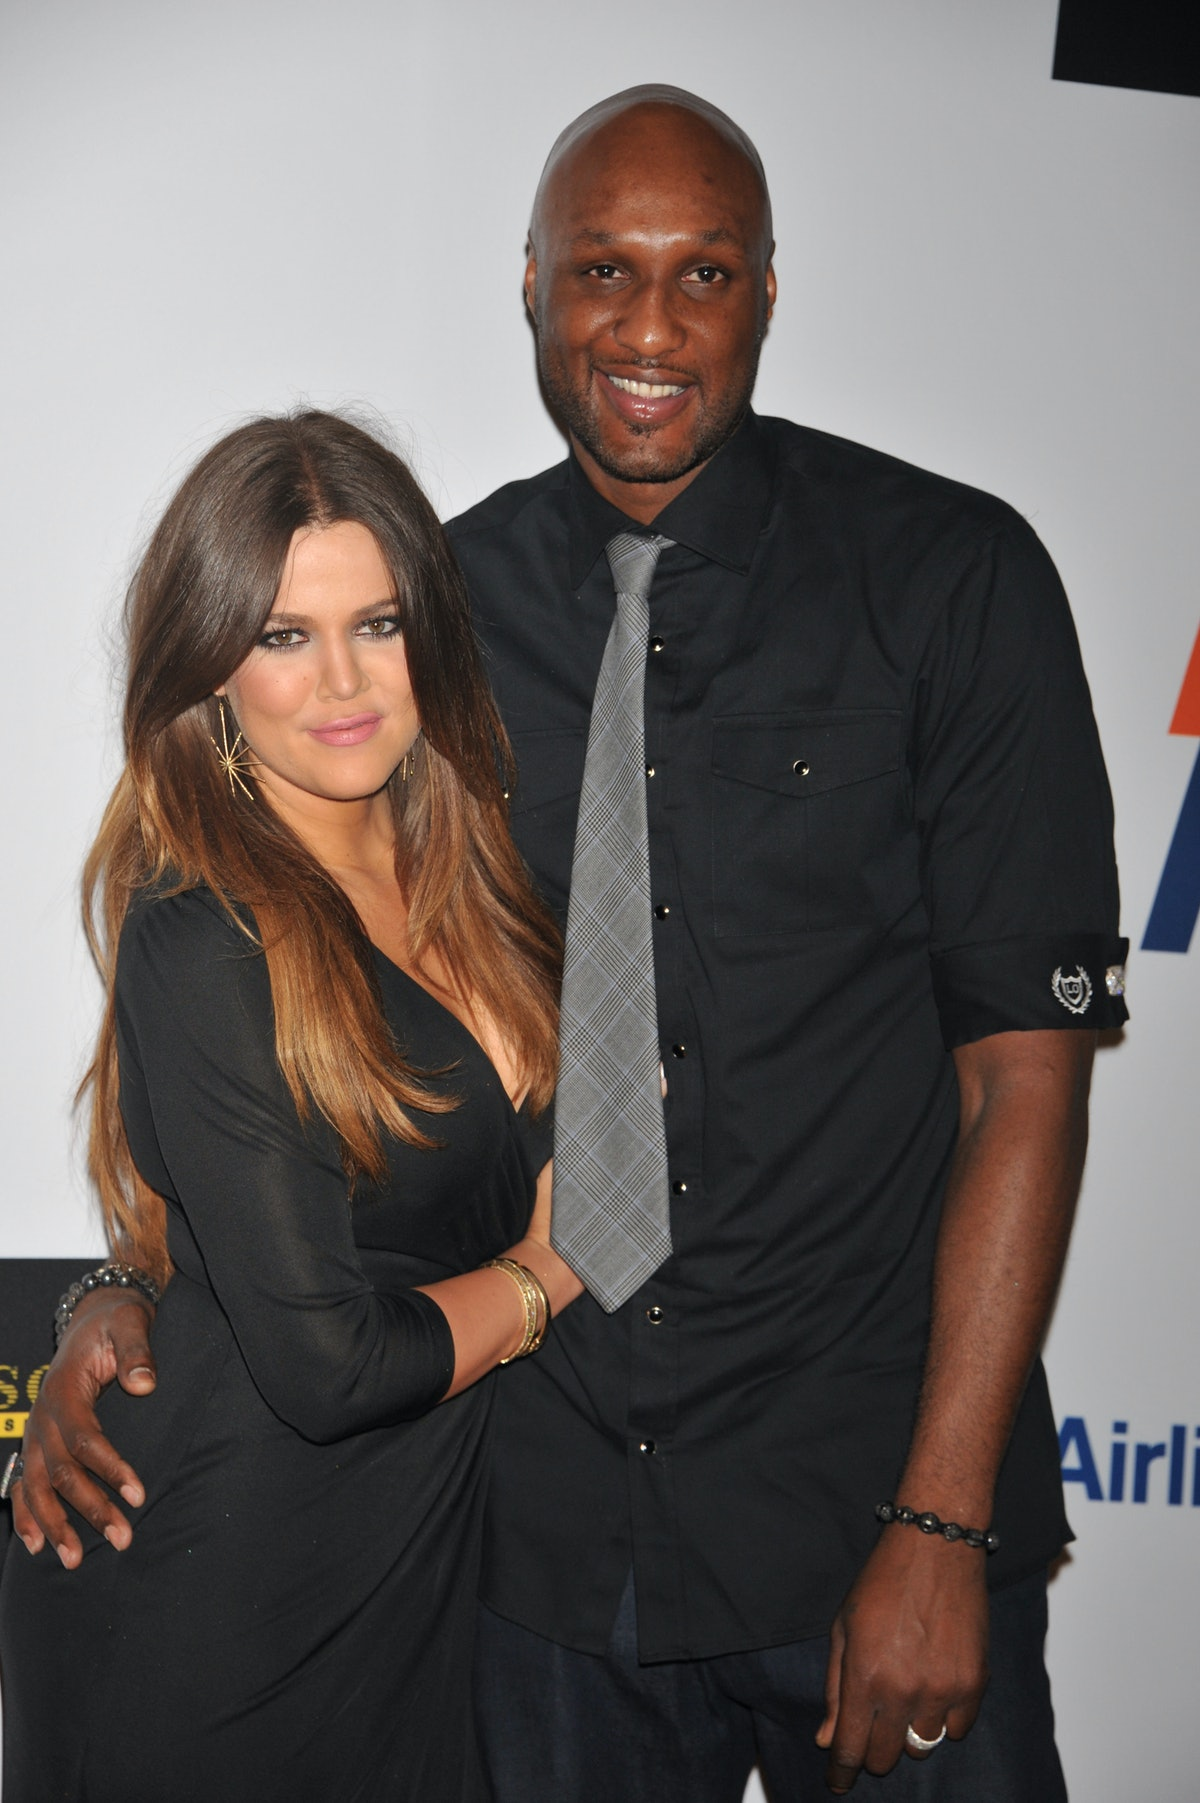 Actress Chloe Kardashian and Lamar Odom arrive at the 19th Annual Race to Erase MS held at the Hyatt...